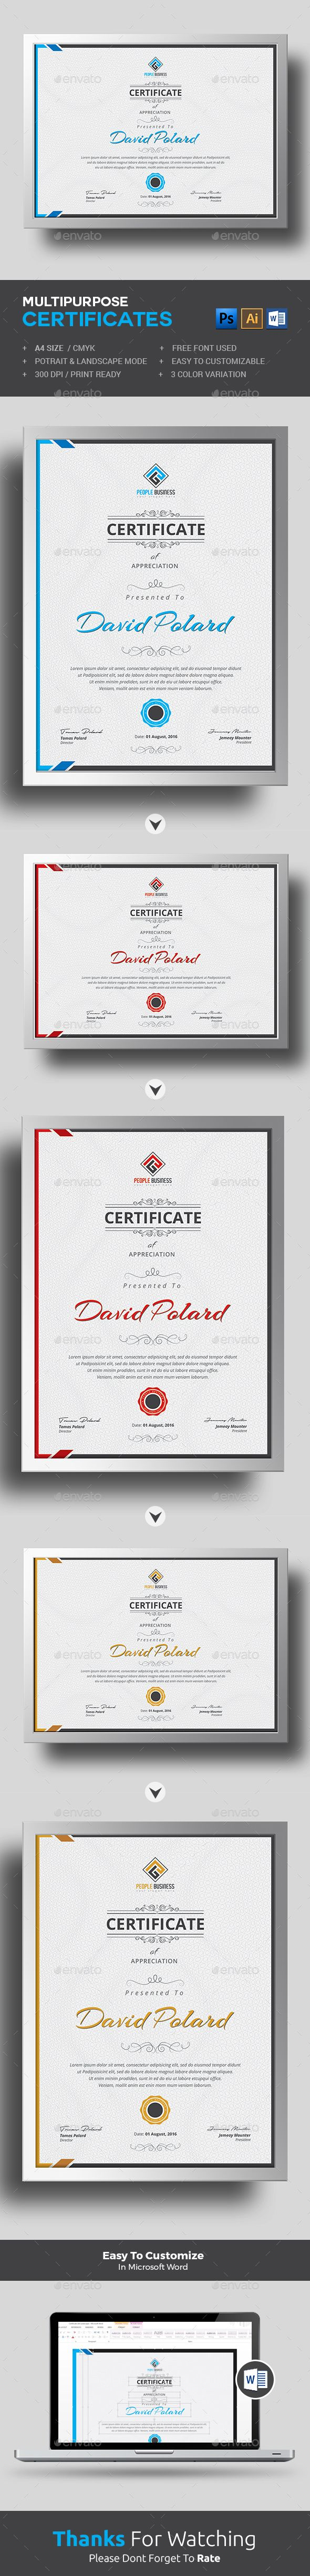 Certificate Template PSD, AI Illustrator. Download here: https://graphicriver.net/item/certificate/17623087?ref=ksioks